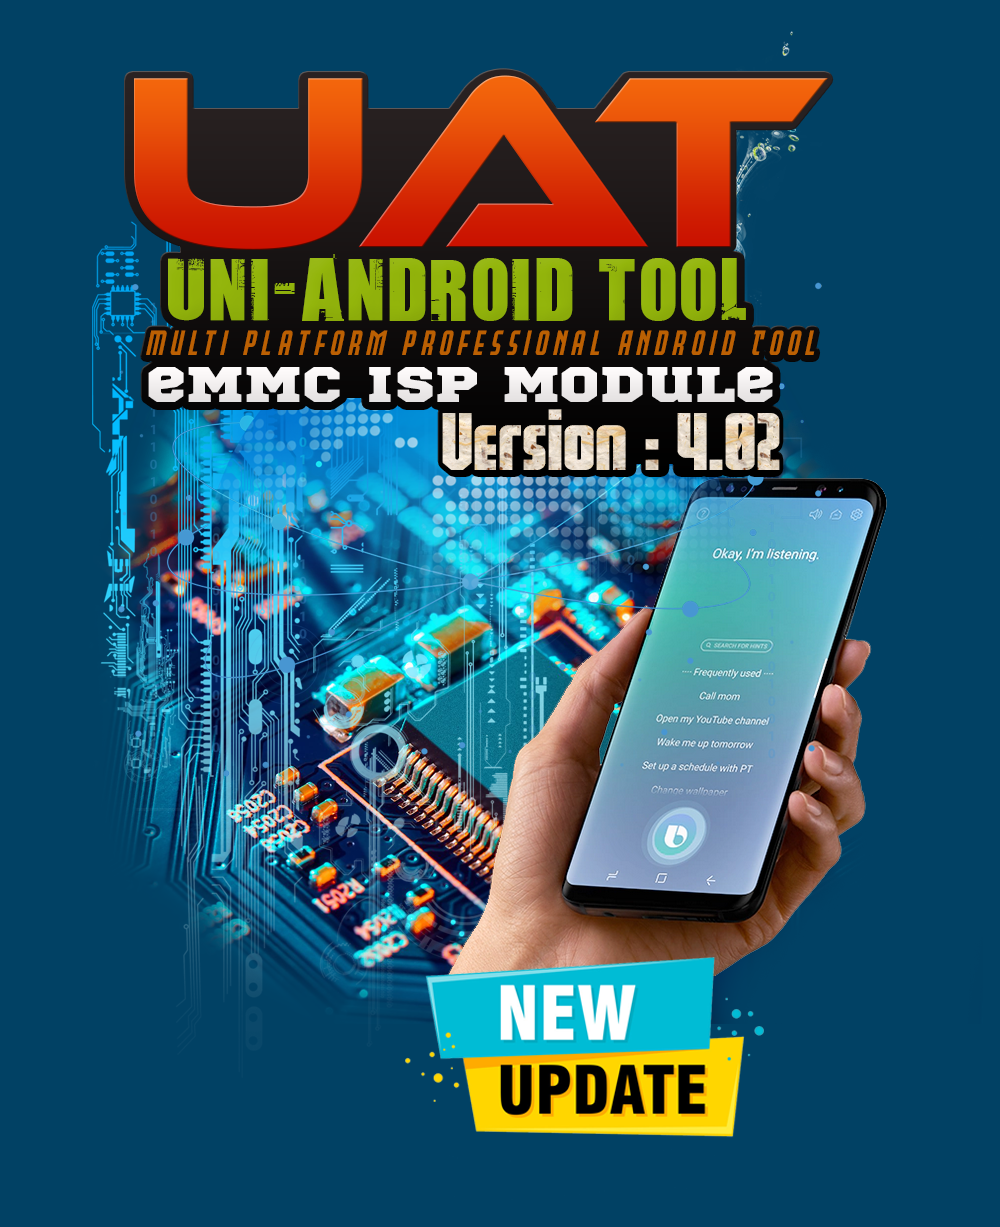 Uni-Android Tool [UAT] eMMC ISP MODULE Version 4.02 - 28th July 2020